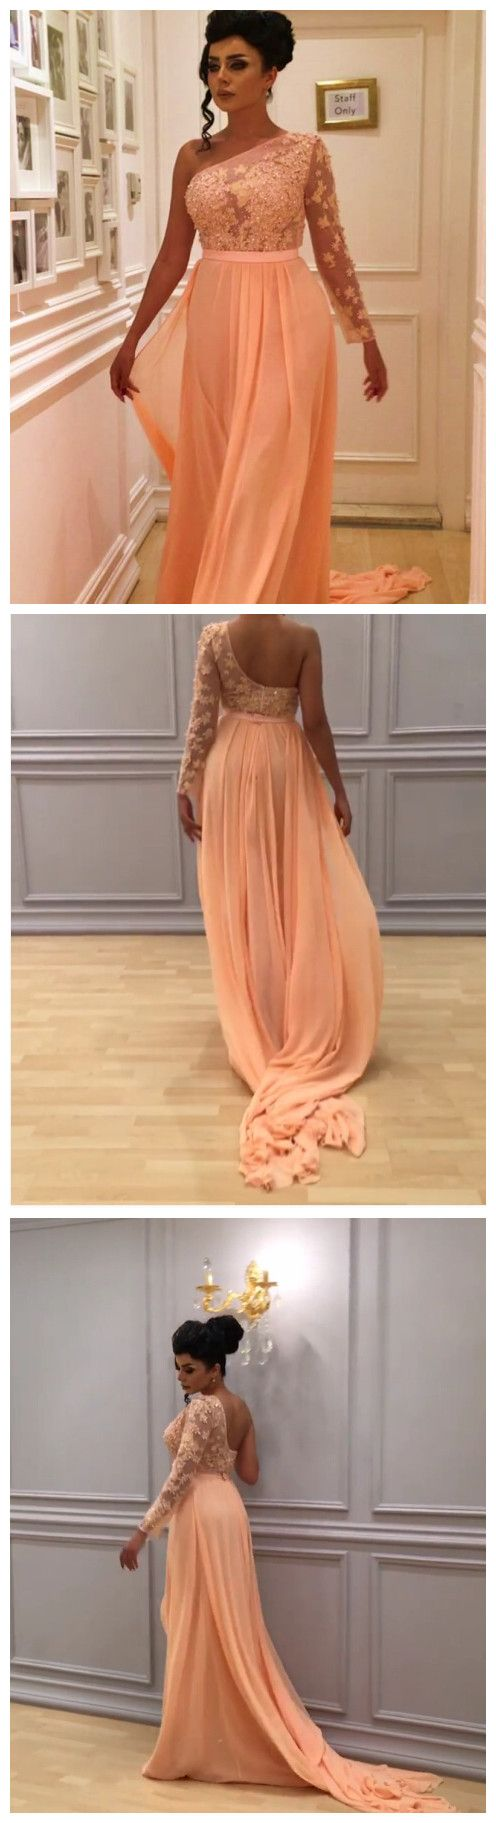 New arrival prom dressmodest prom dressone shoulder prom dresses